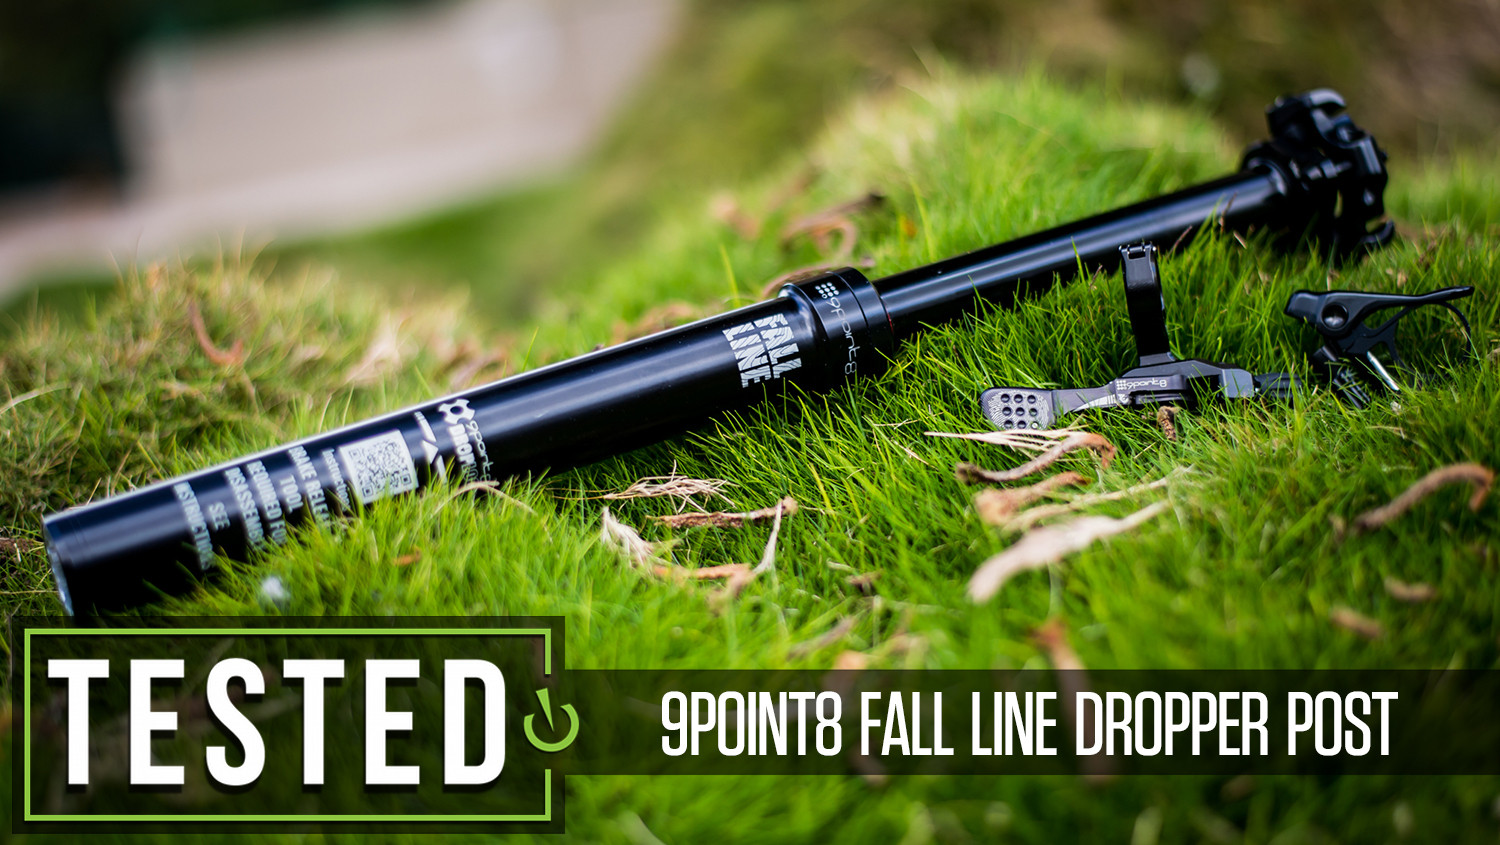 Tested: 9point8 Fall Line Dropper Post